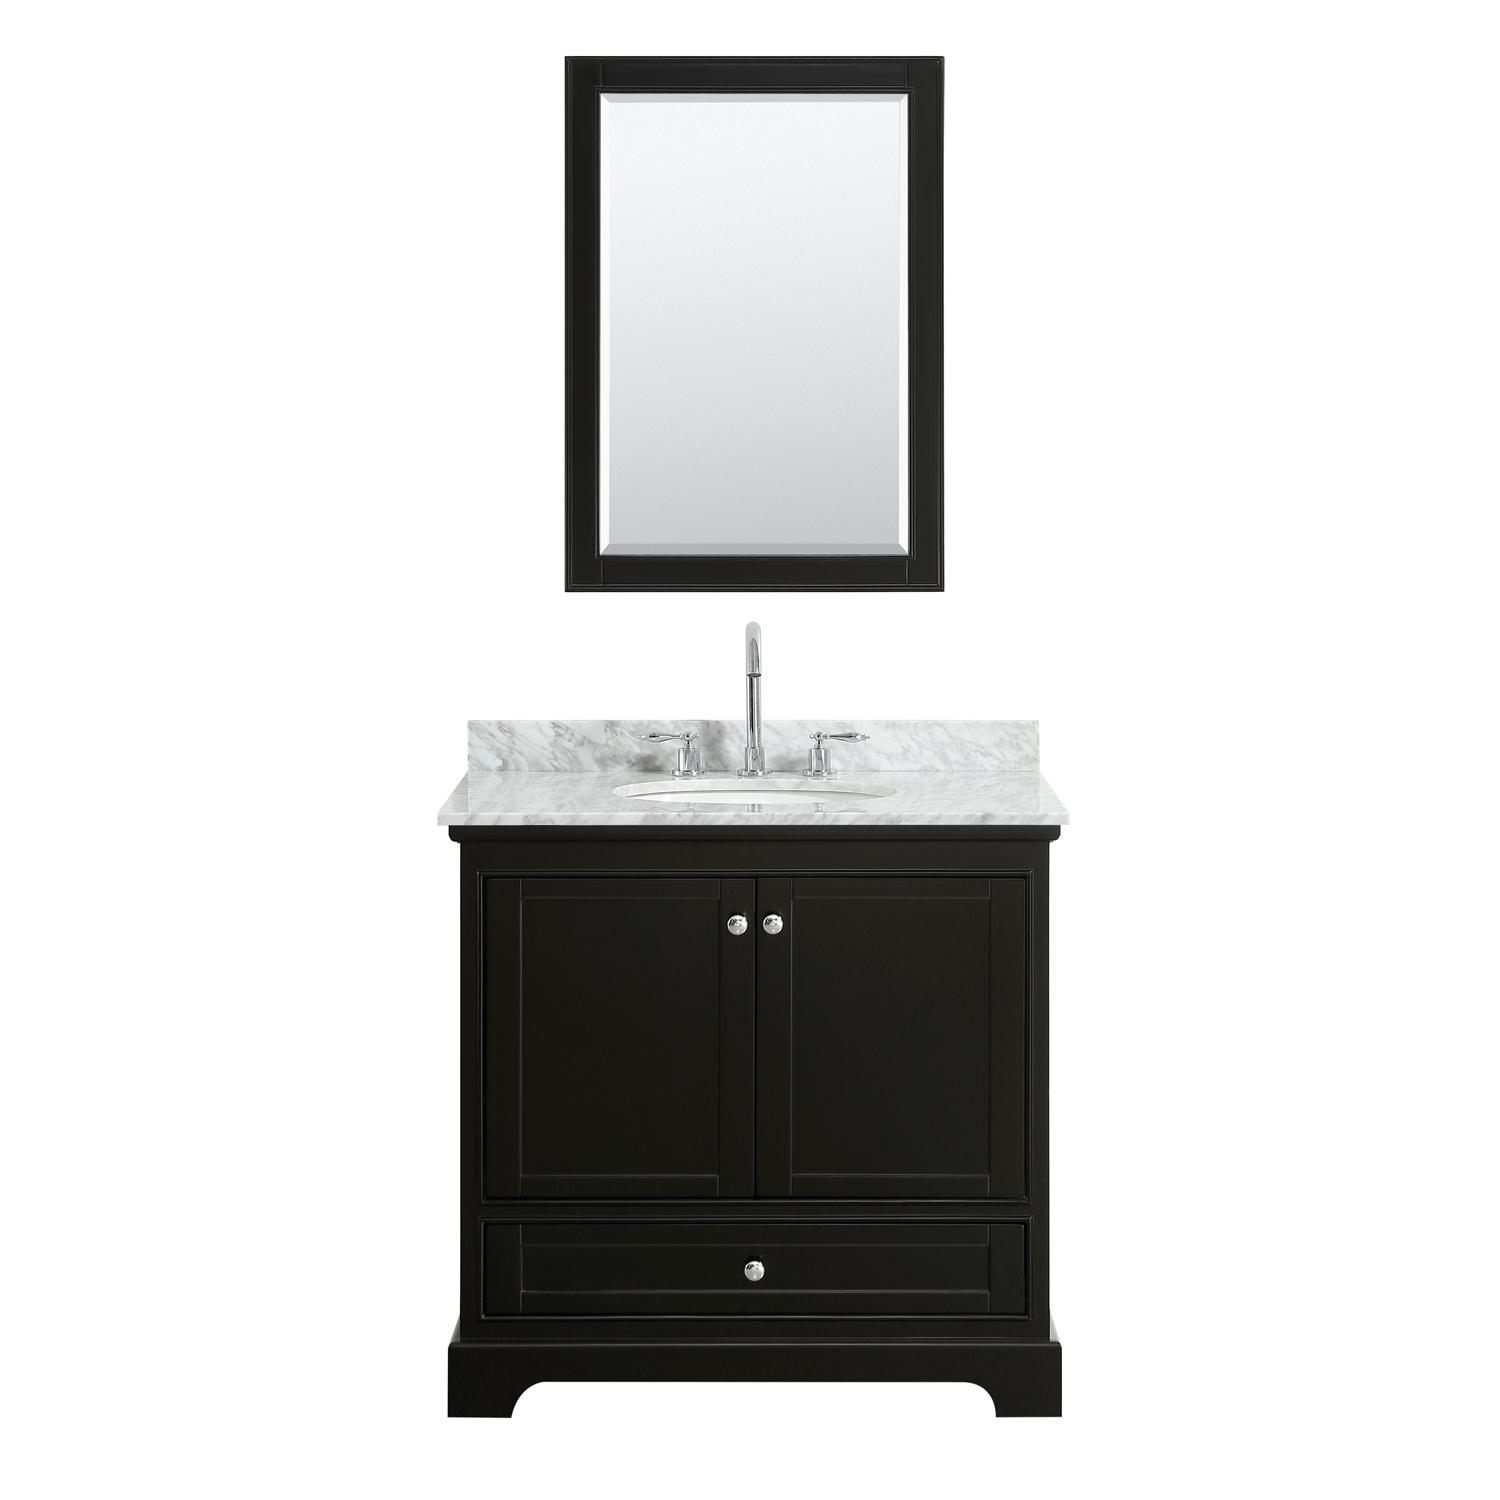 """36"""" Single Bathroom Vanity in White Carrara Marble Countertop with Undermount Porcelain Sink, Medicine Cabinet, Mirror and Color Options"""